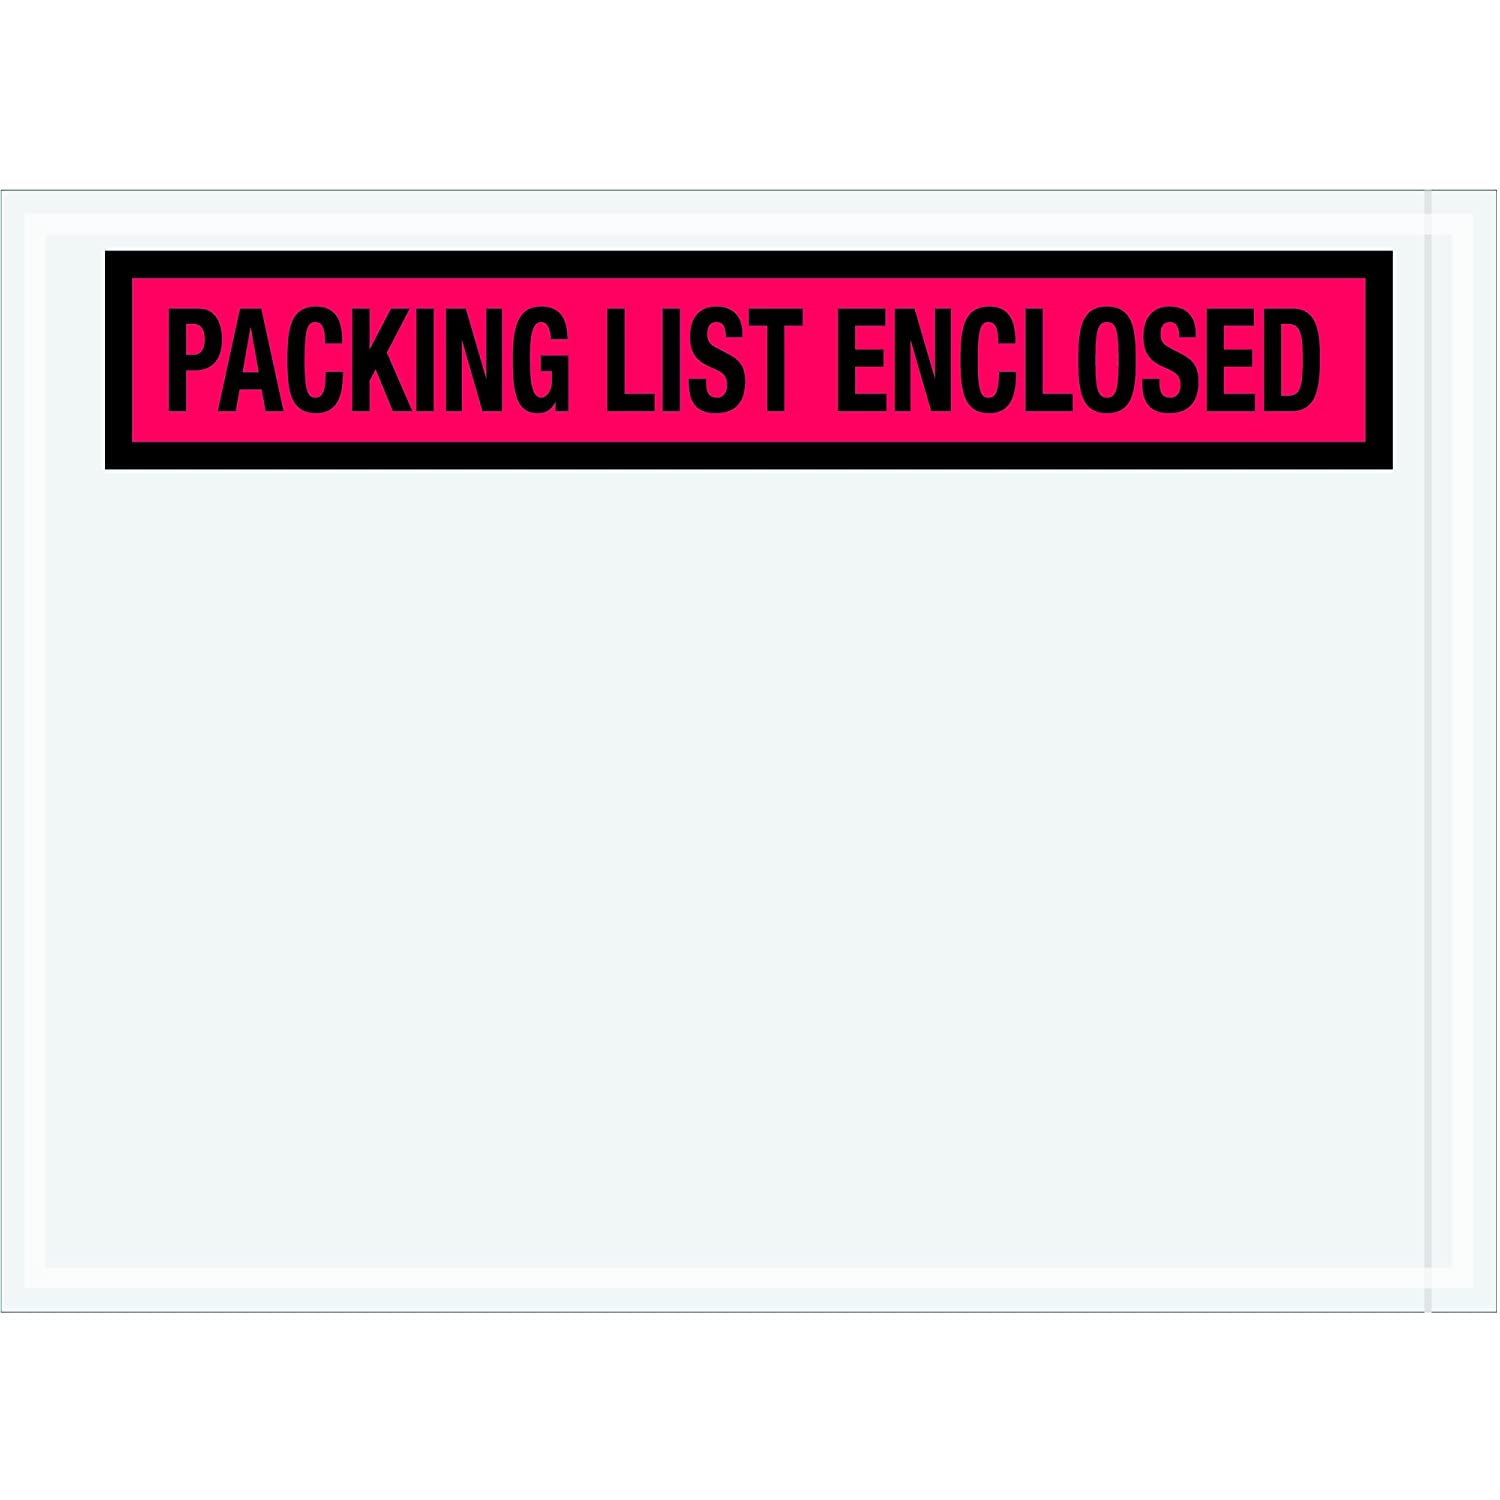 Panel Face Pack of 1000 Red Tape Logic TLPL451Packing List Enclosed Envelopes 4 1//2 x 6